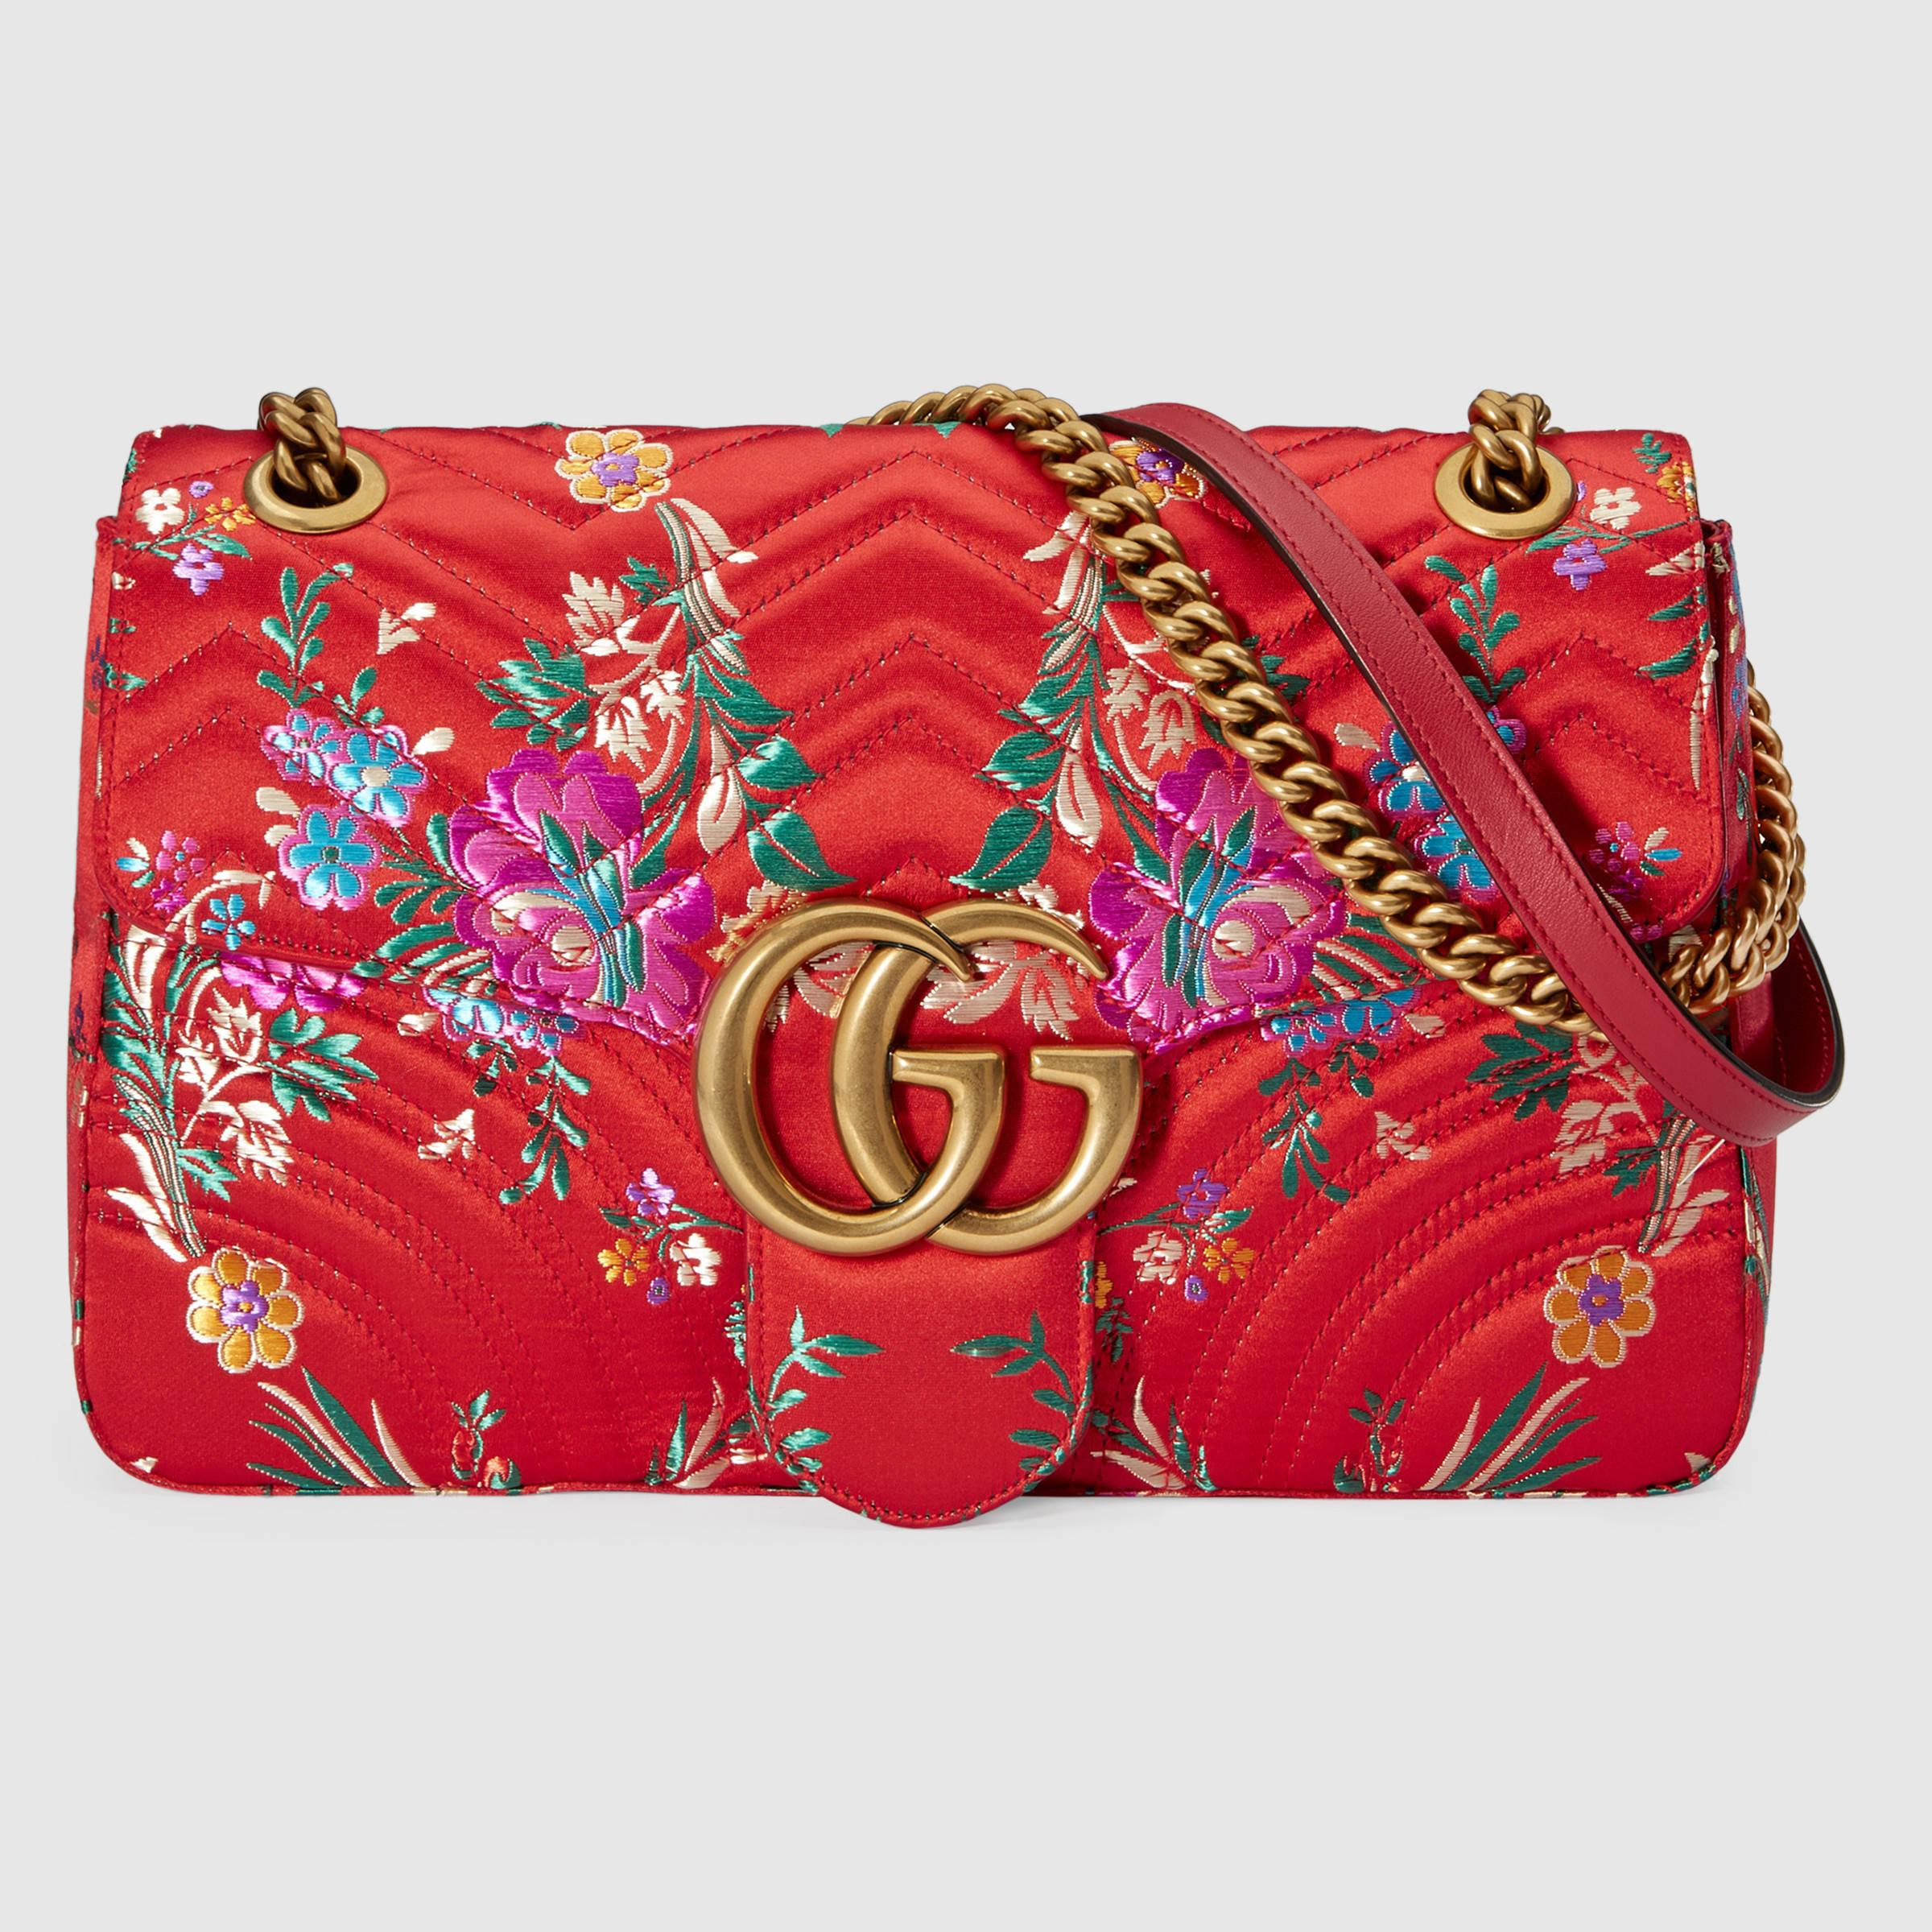 d9f24a3c1b63 Lyst - Gucci Gg Marmont Floral Jacquard Shoulder Bag in Red